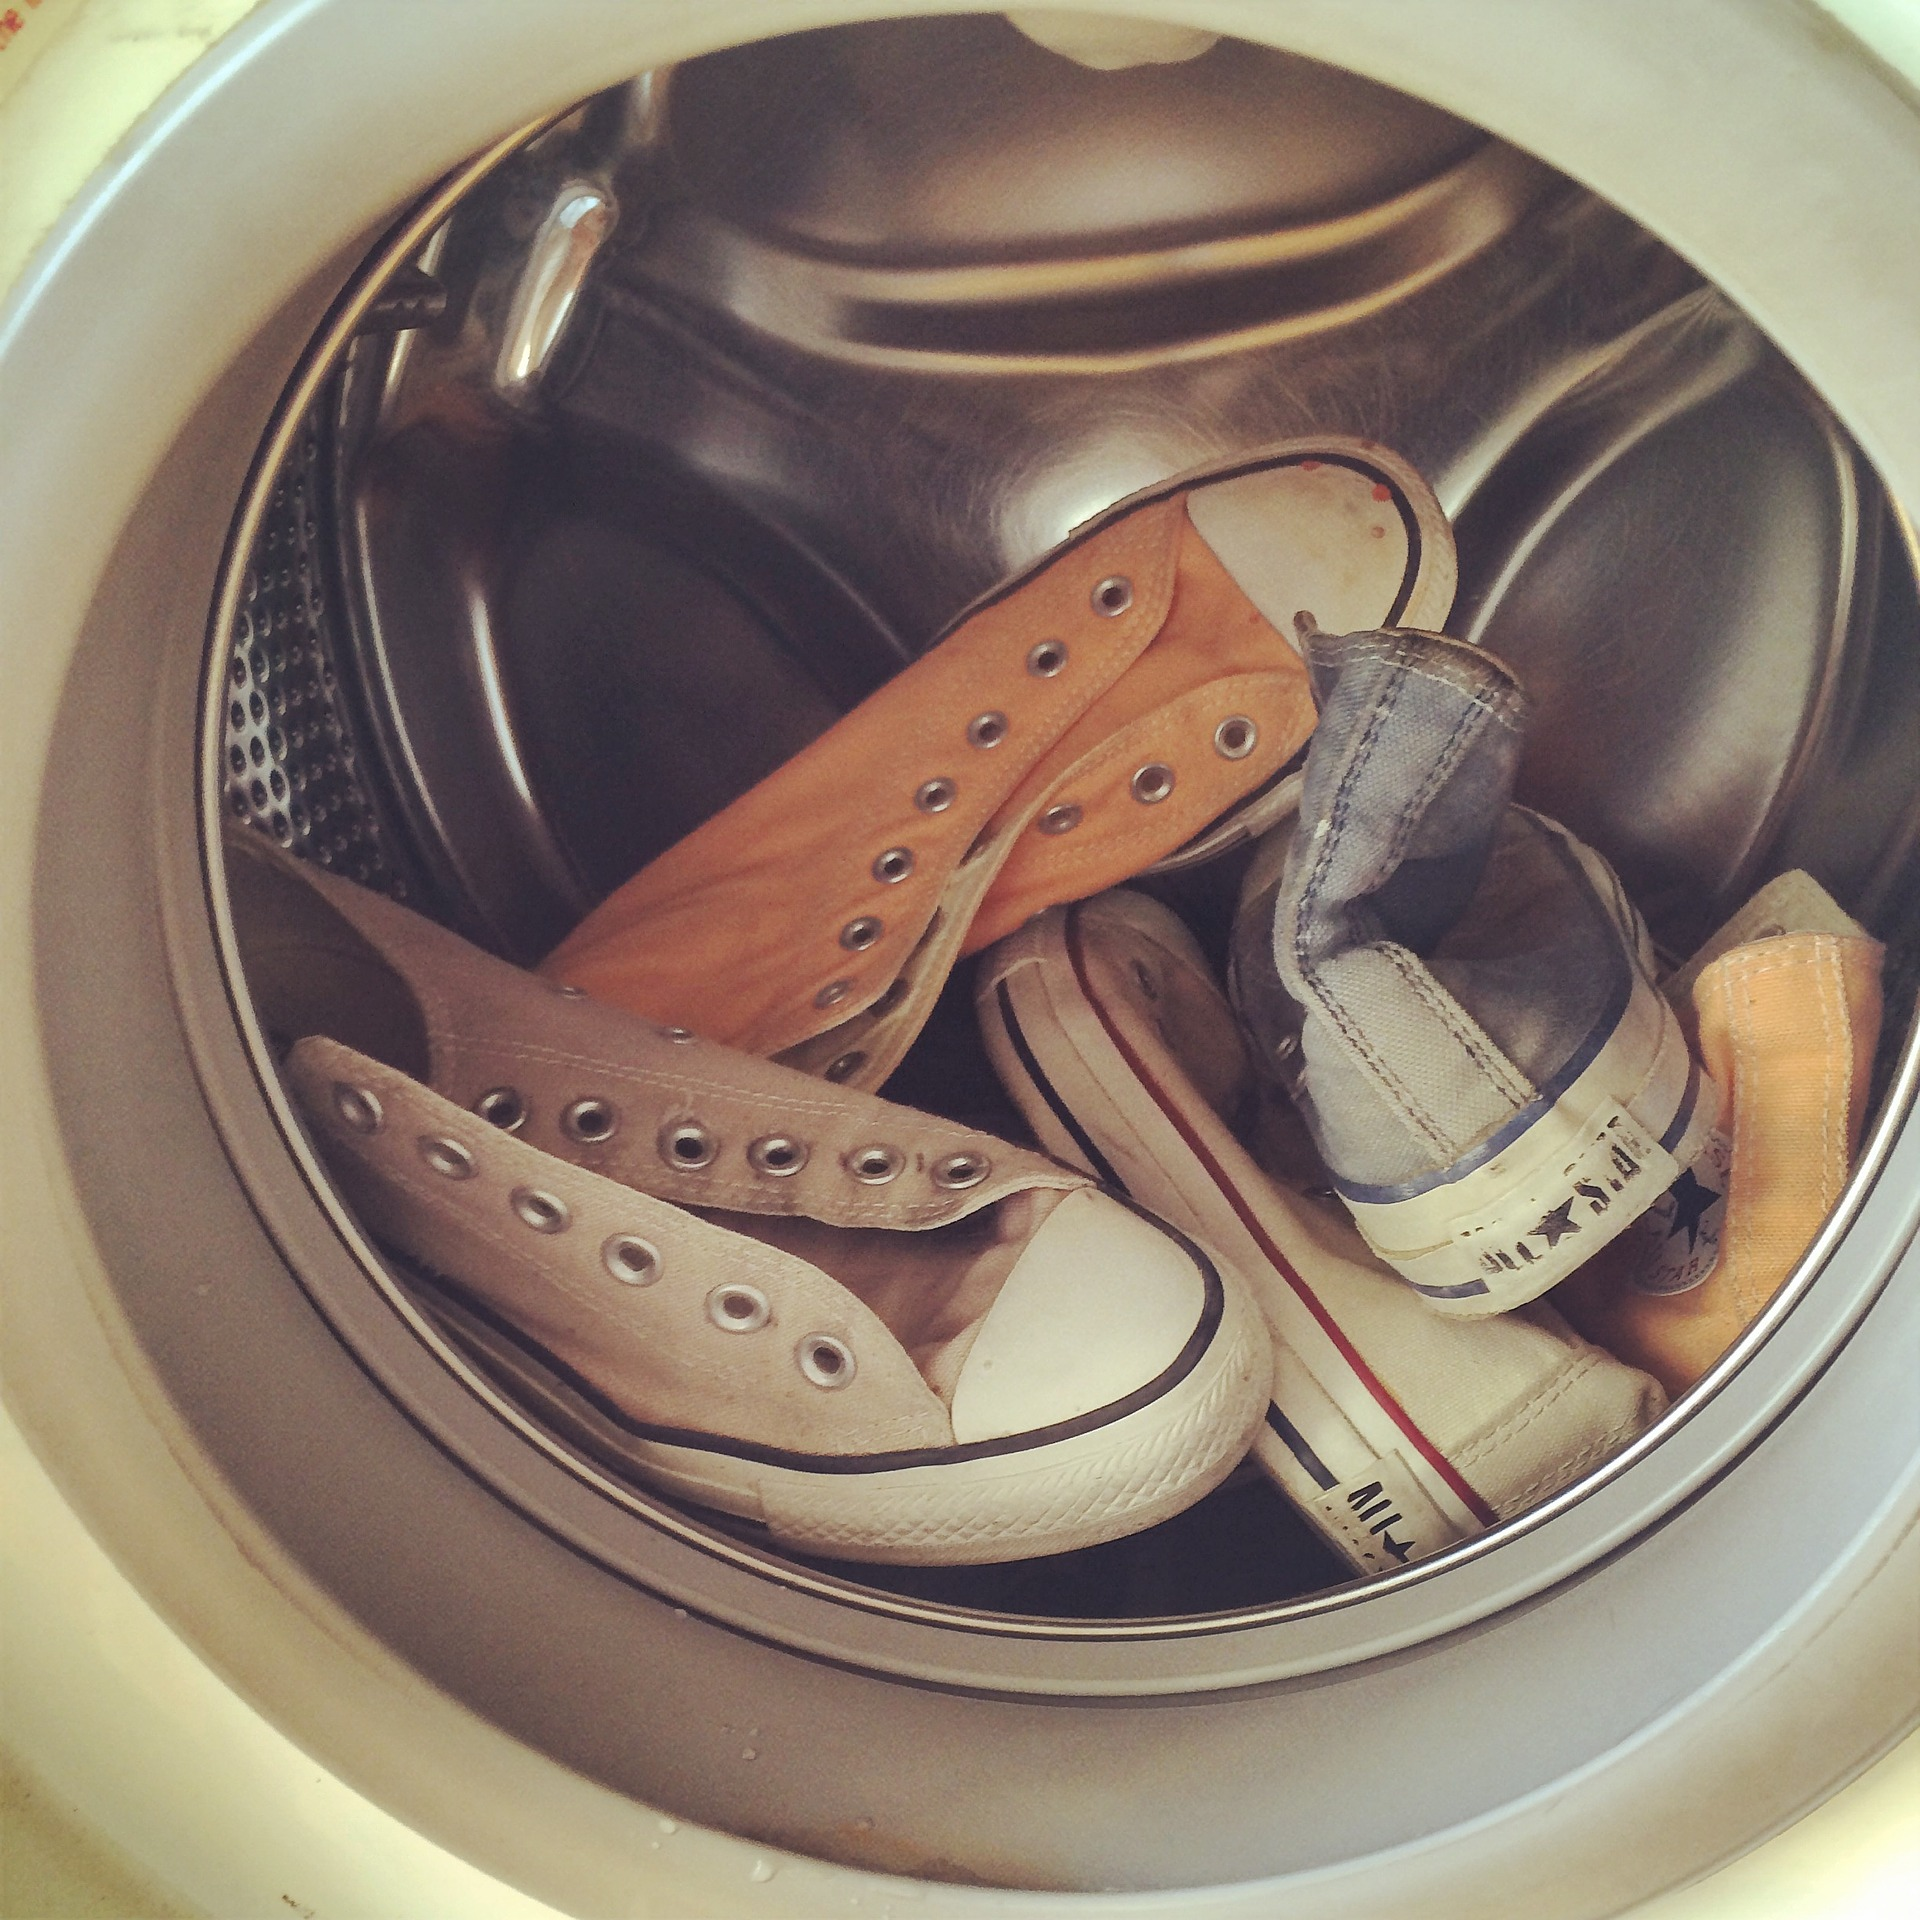 Second-hand appliances  – never again